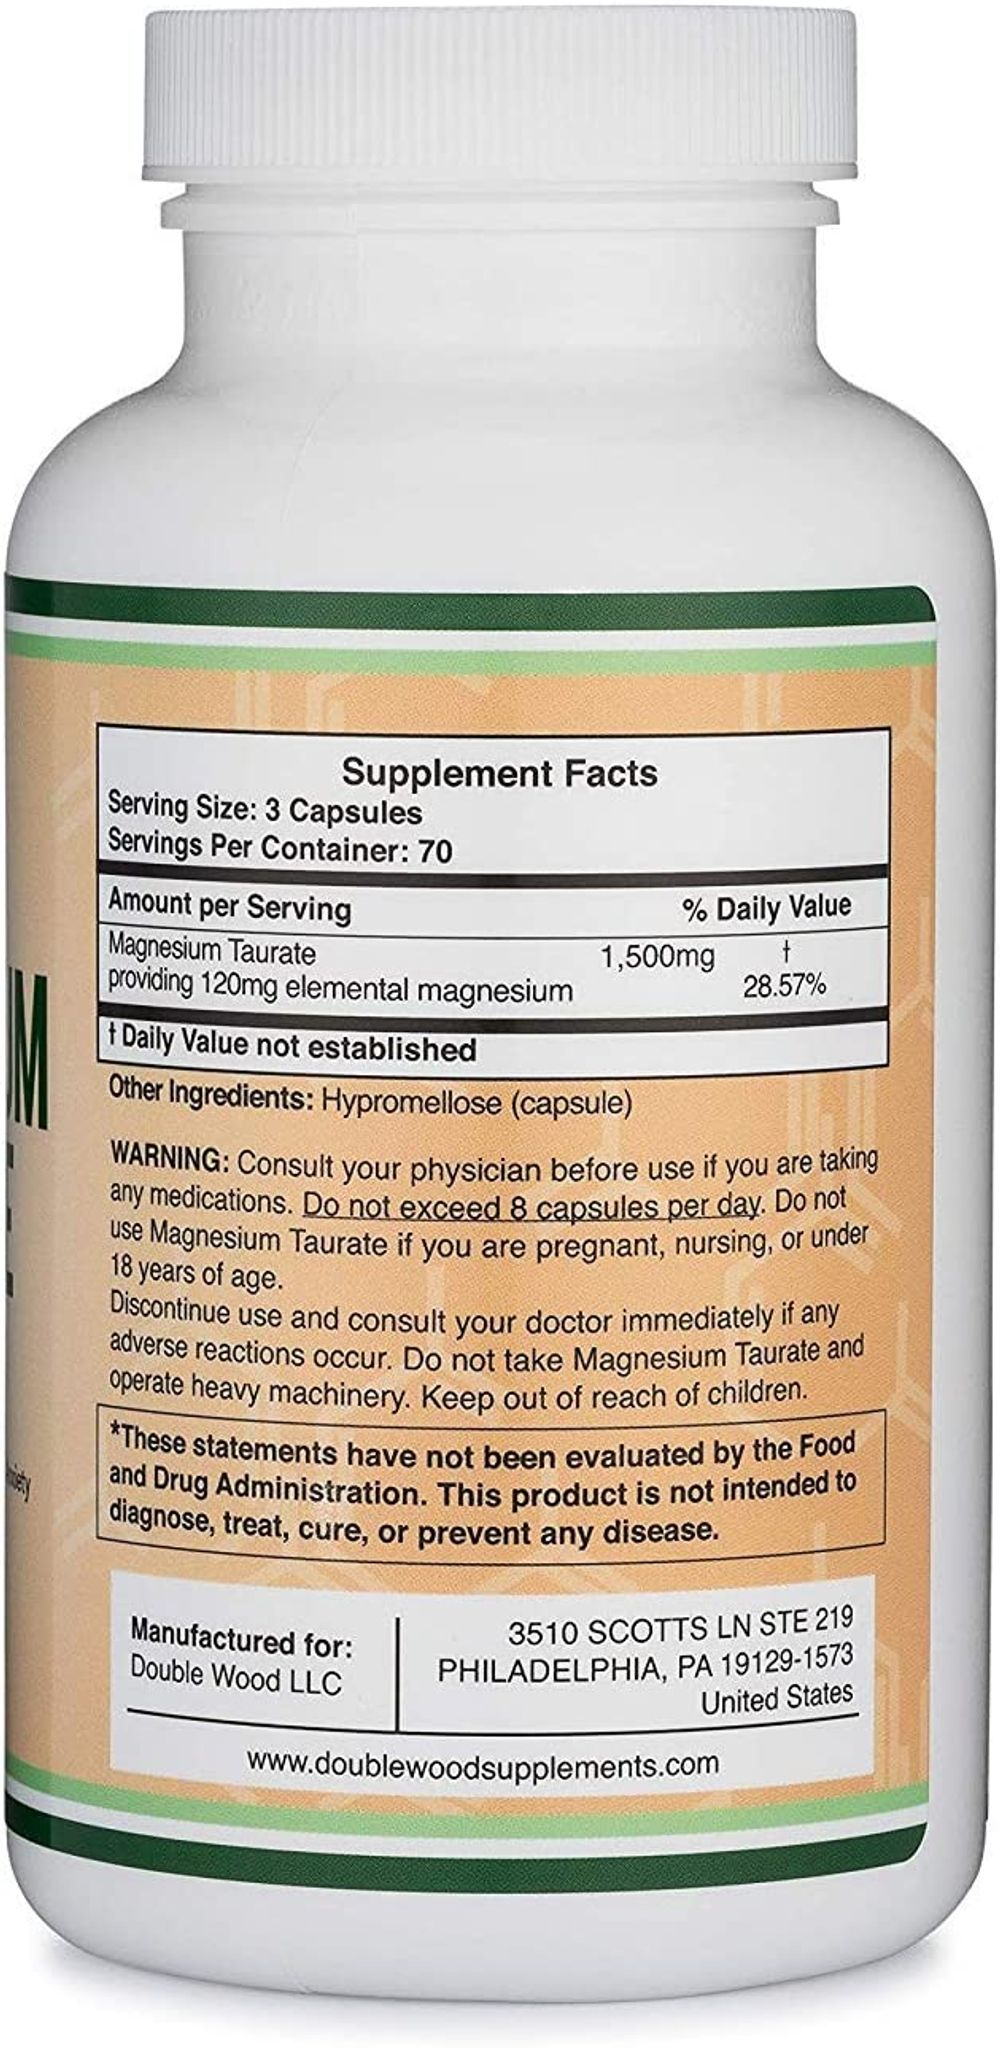 Magnesium Taurate Supplement For Sleep, Calming, and Cardiovascular Support (500mg, 210 Vegan Capsules) Made in USA, by Double Wood Supplements